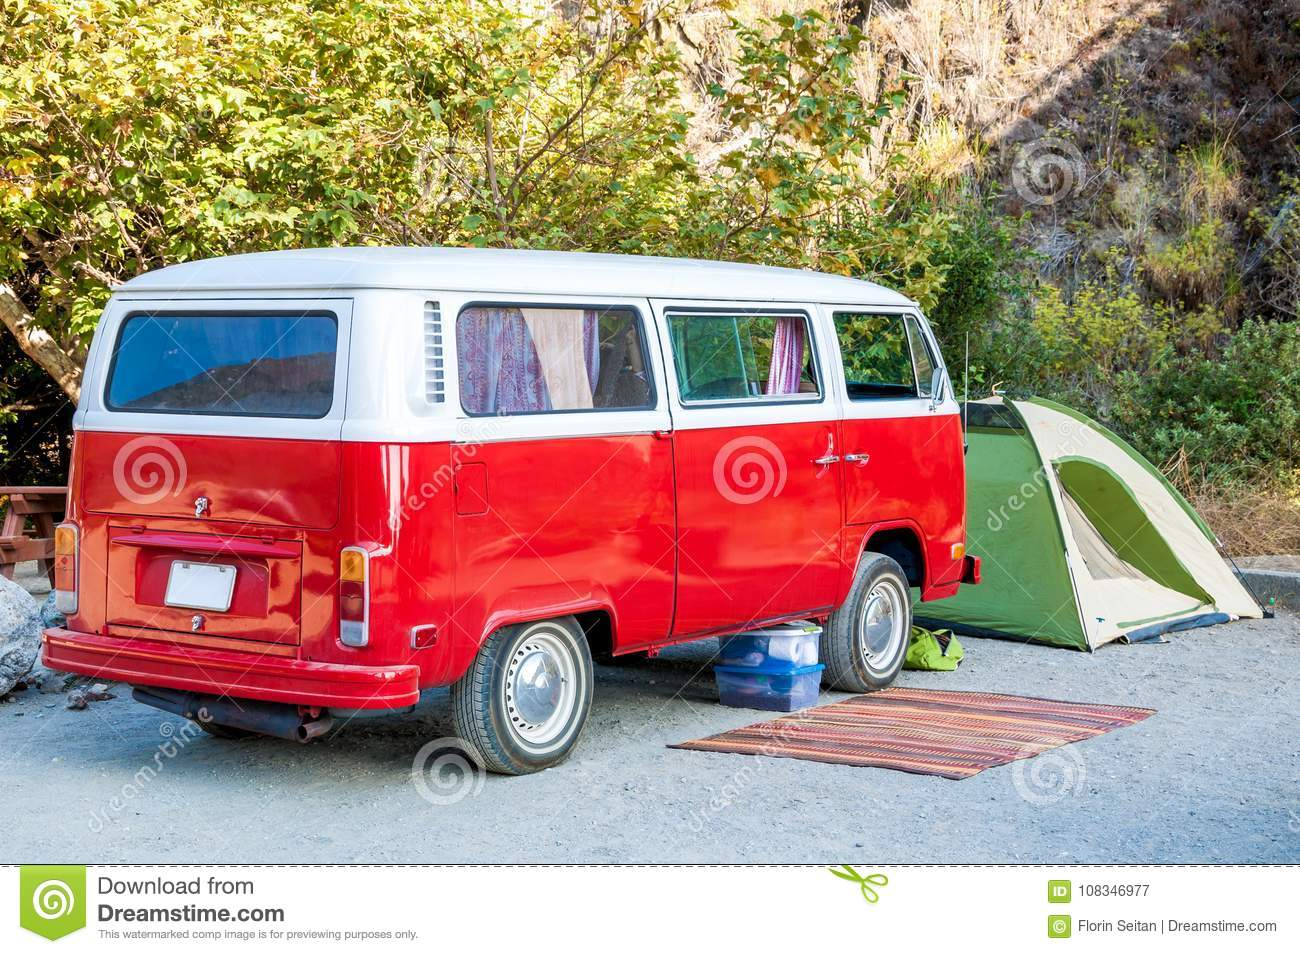 Beach Campsite With Red Hippie Minibus Green Tent And Rustic Rug Stock Image Image Of Concept Minibus 108346977